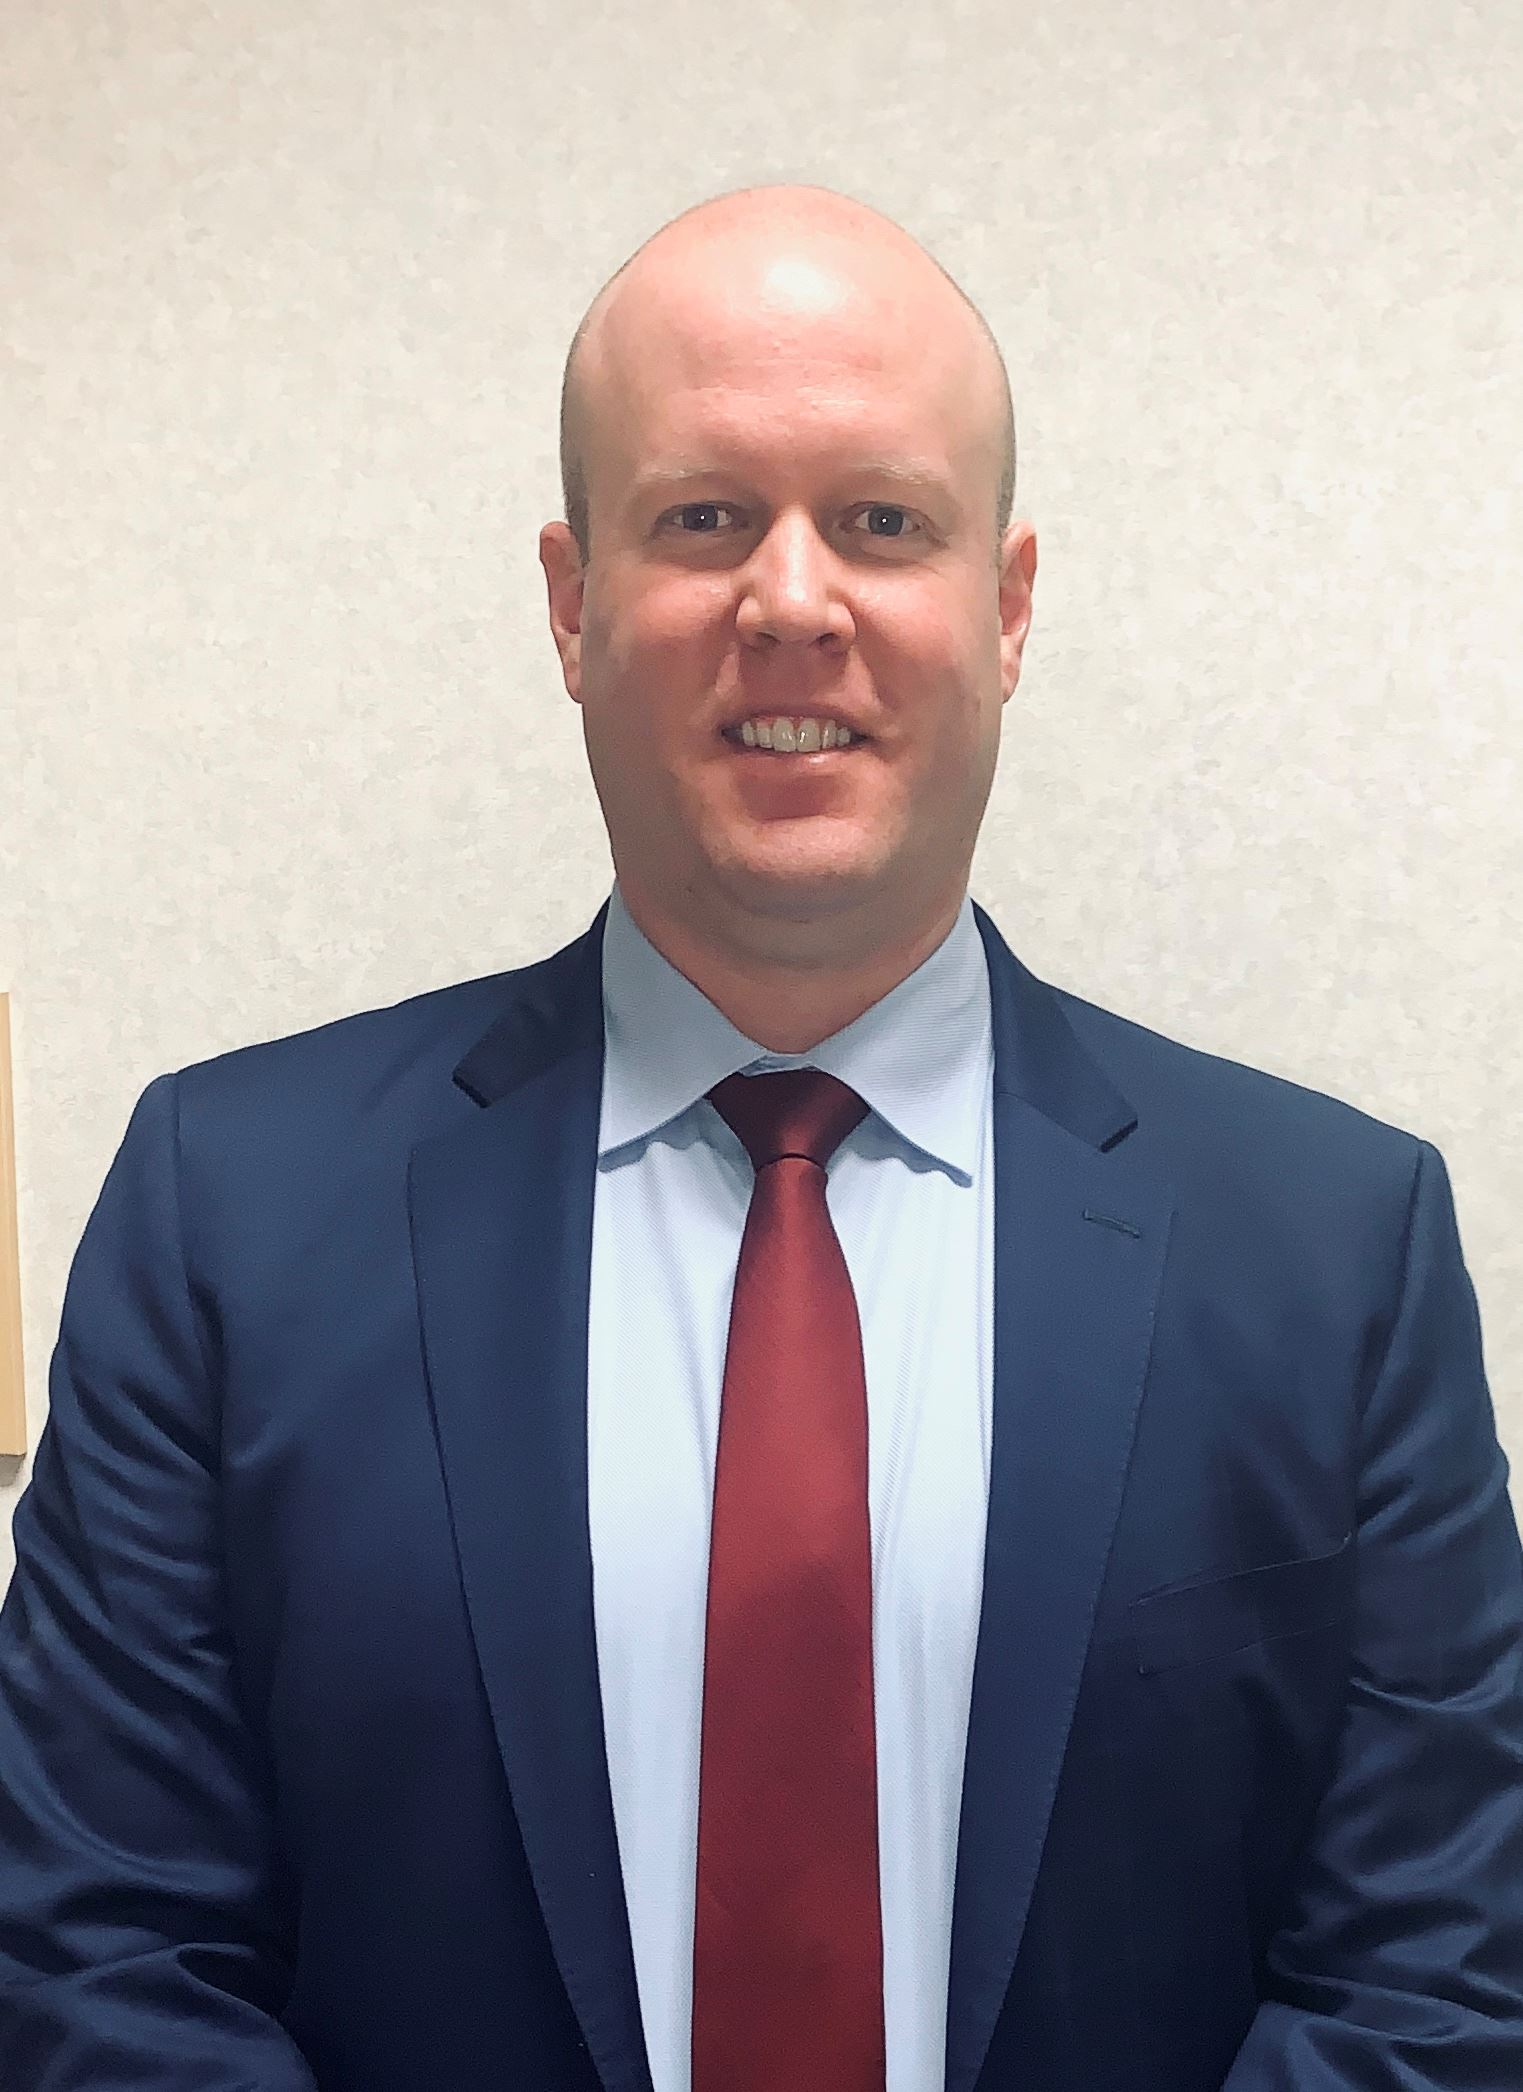 Picture of City's New City Manager Nick Edwards, announced Feb. 26, 2020